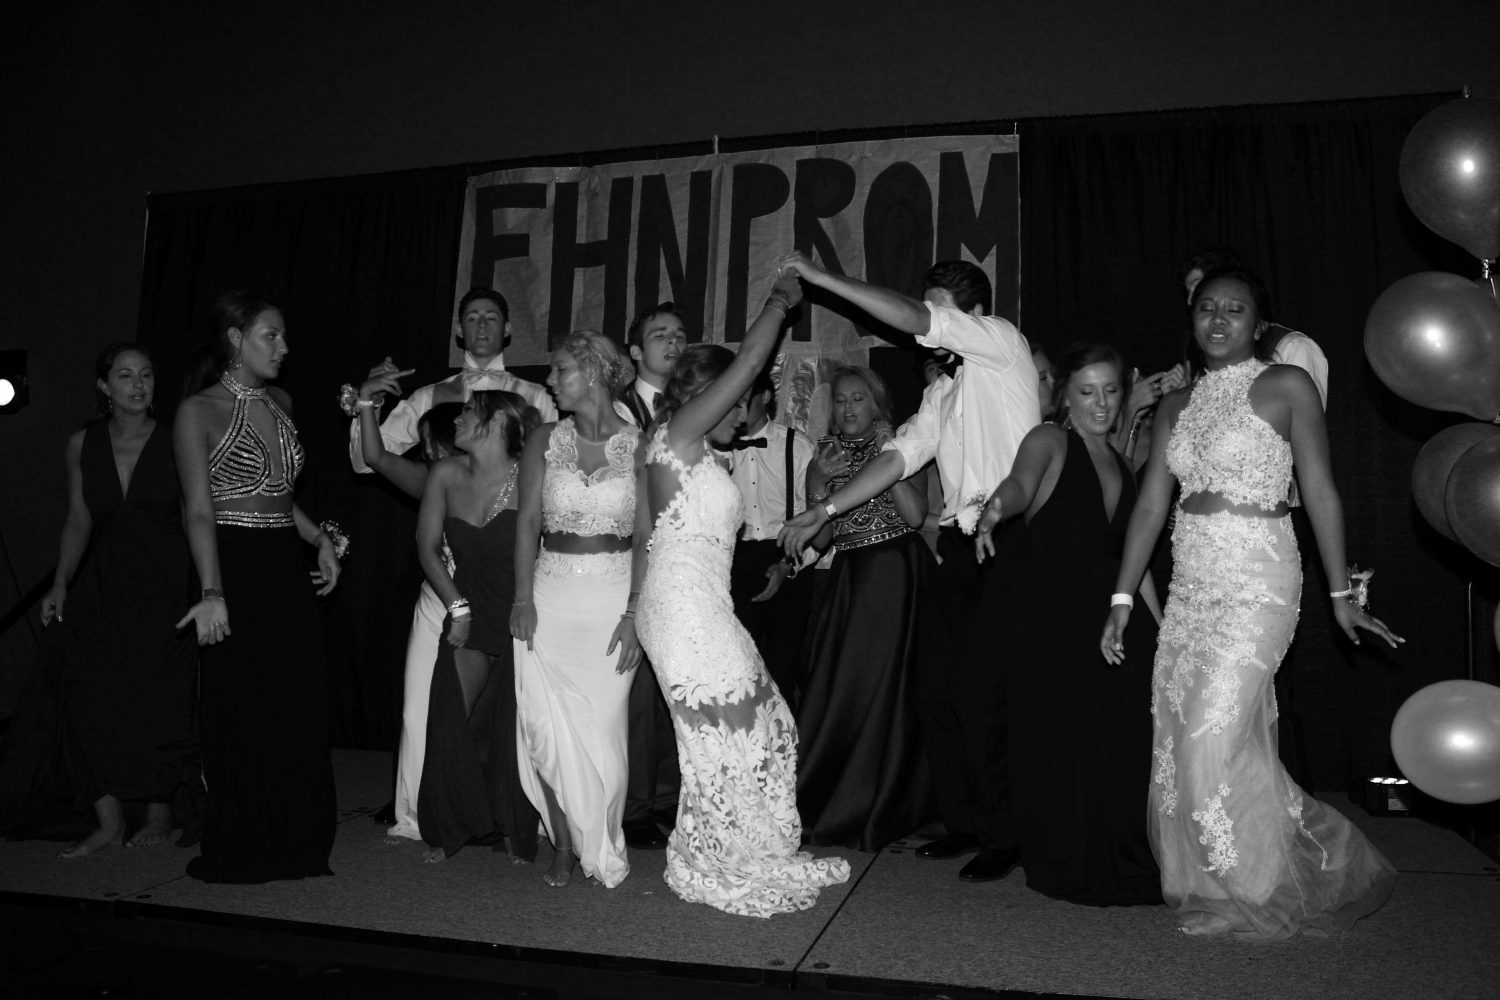 Senior Anna Chowning dances with her date Mitch Carlson at prom. Prom was held at Saint Charles Convention Center with fairytale themed decor.